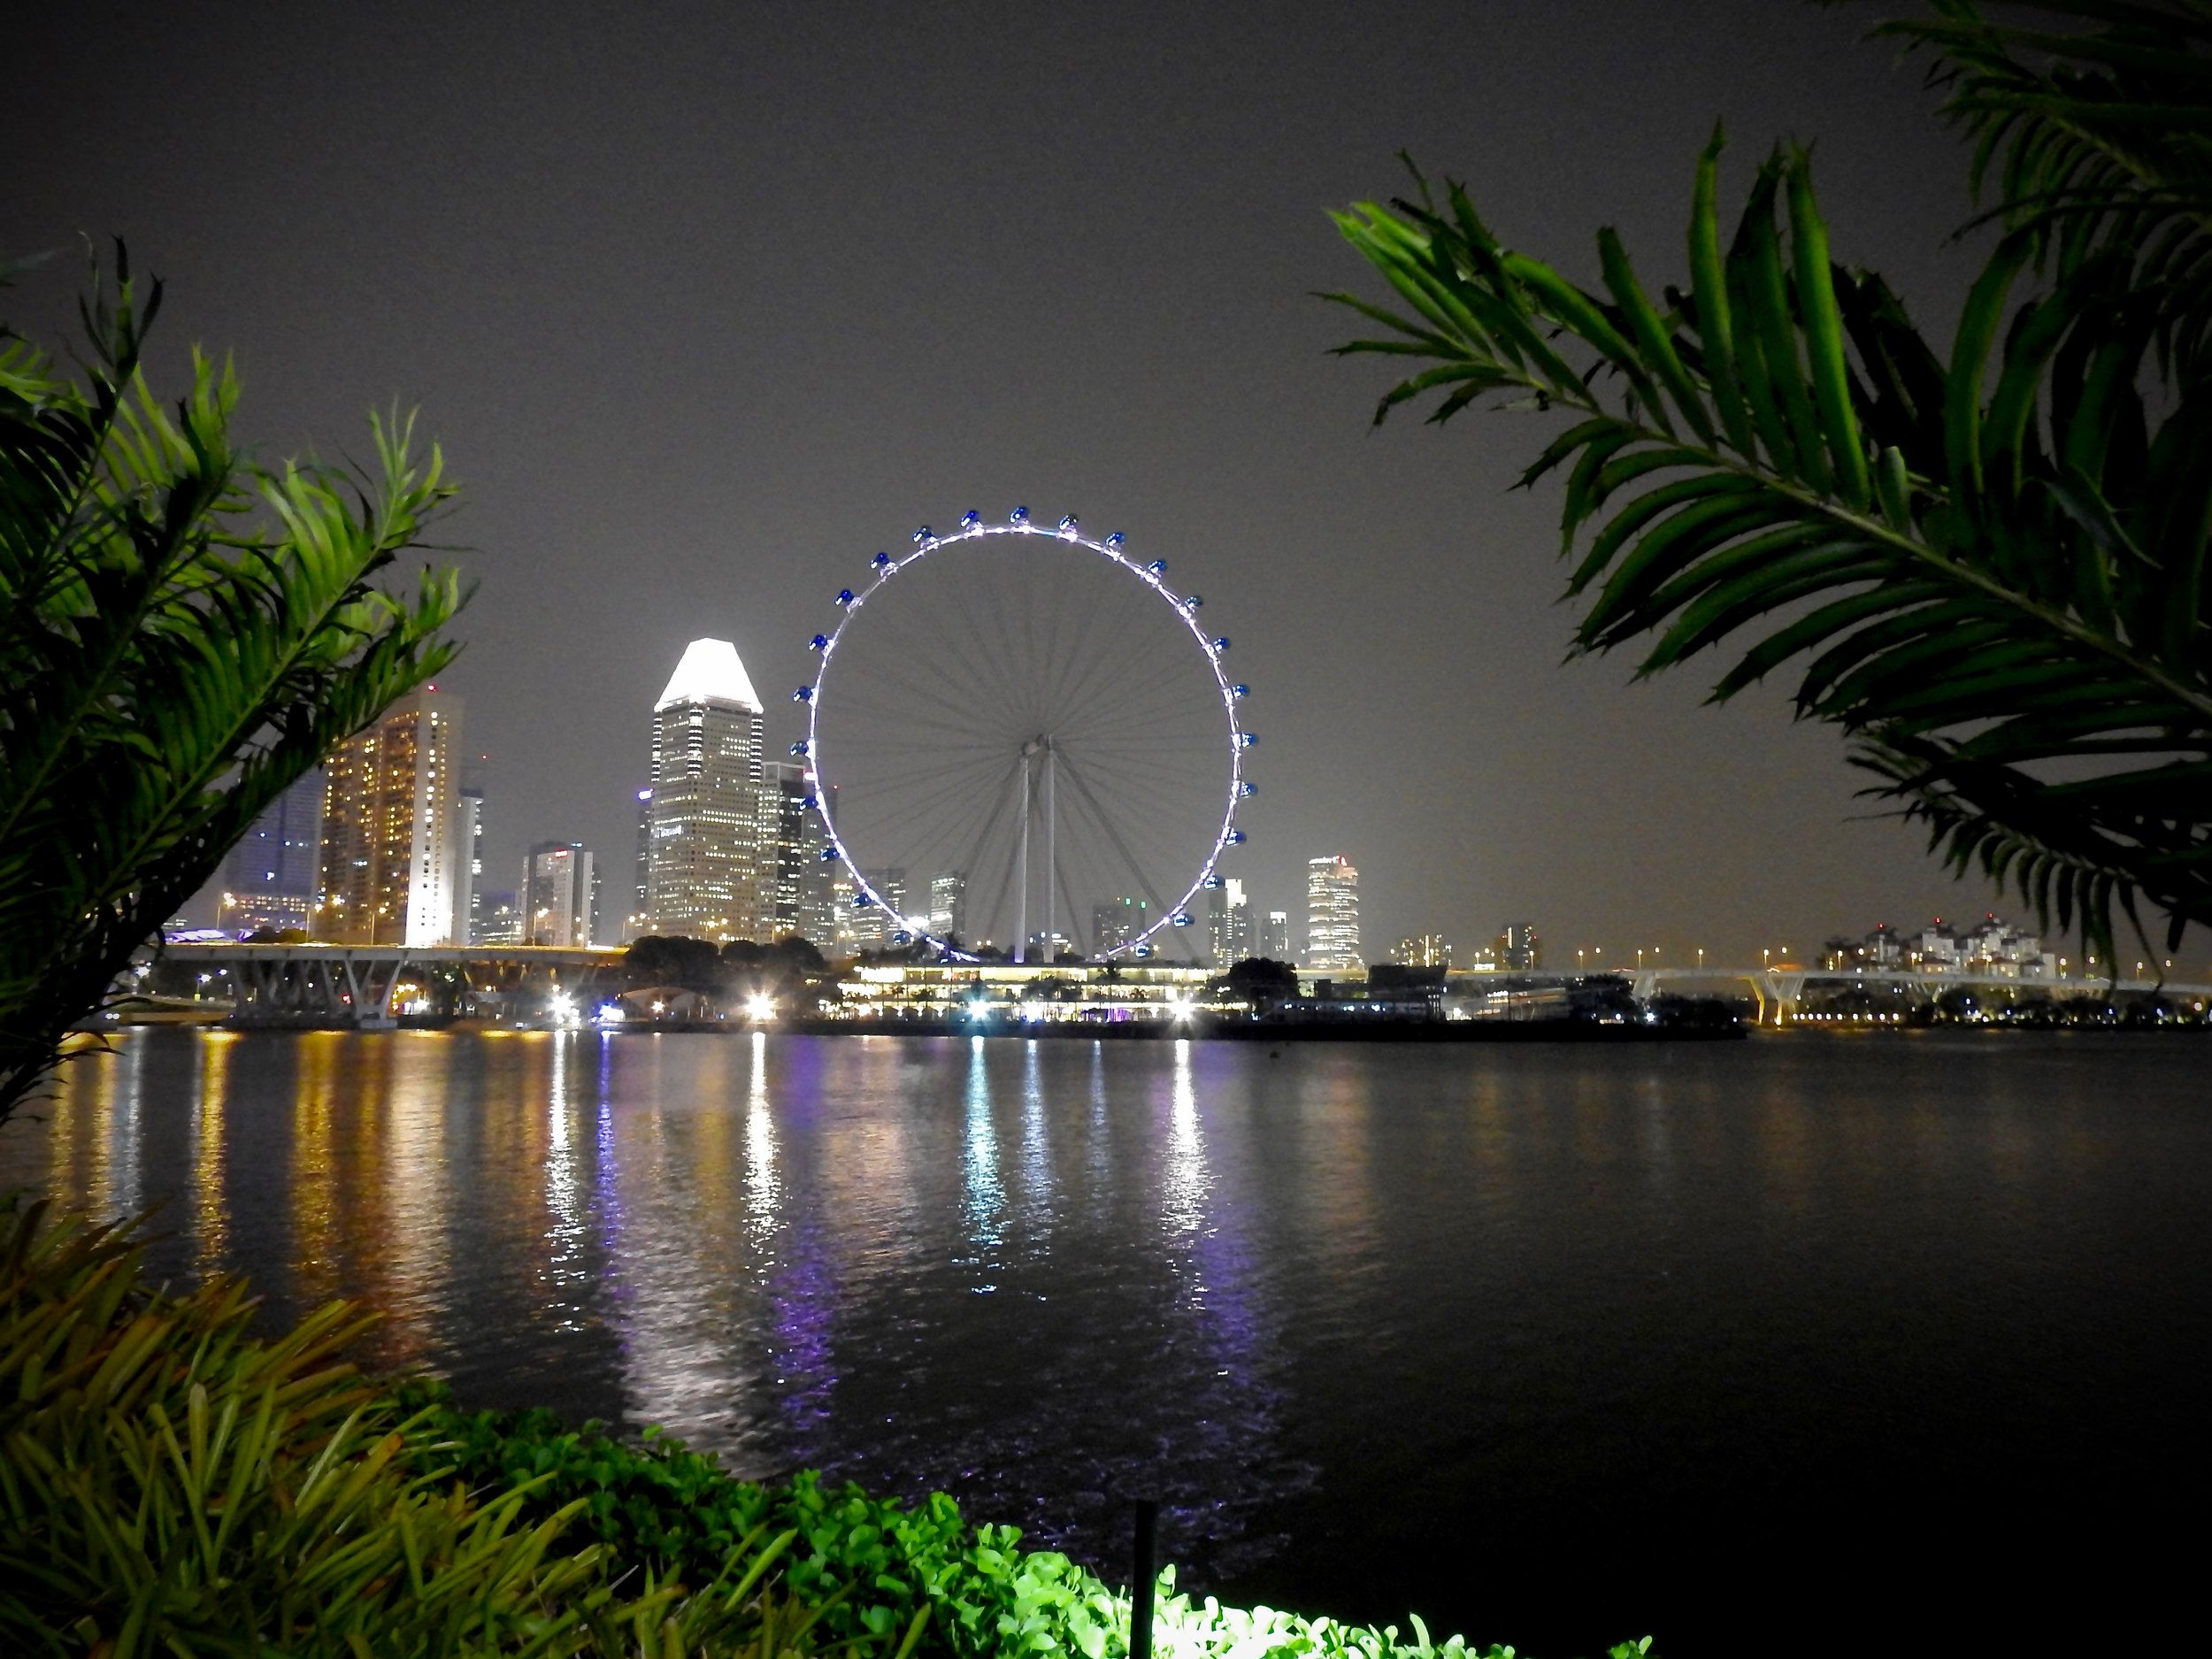 Singapore Flyer seen from the Gardens by the Bay. Photo: (C) Remko Tanis